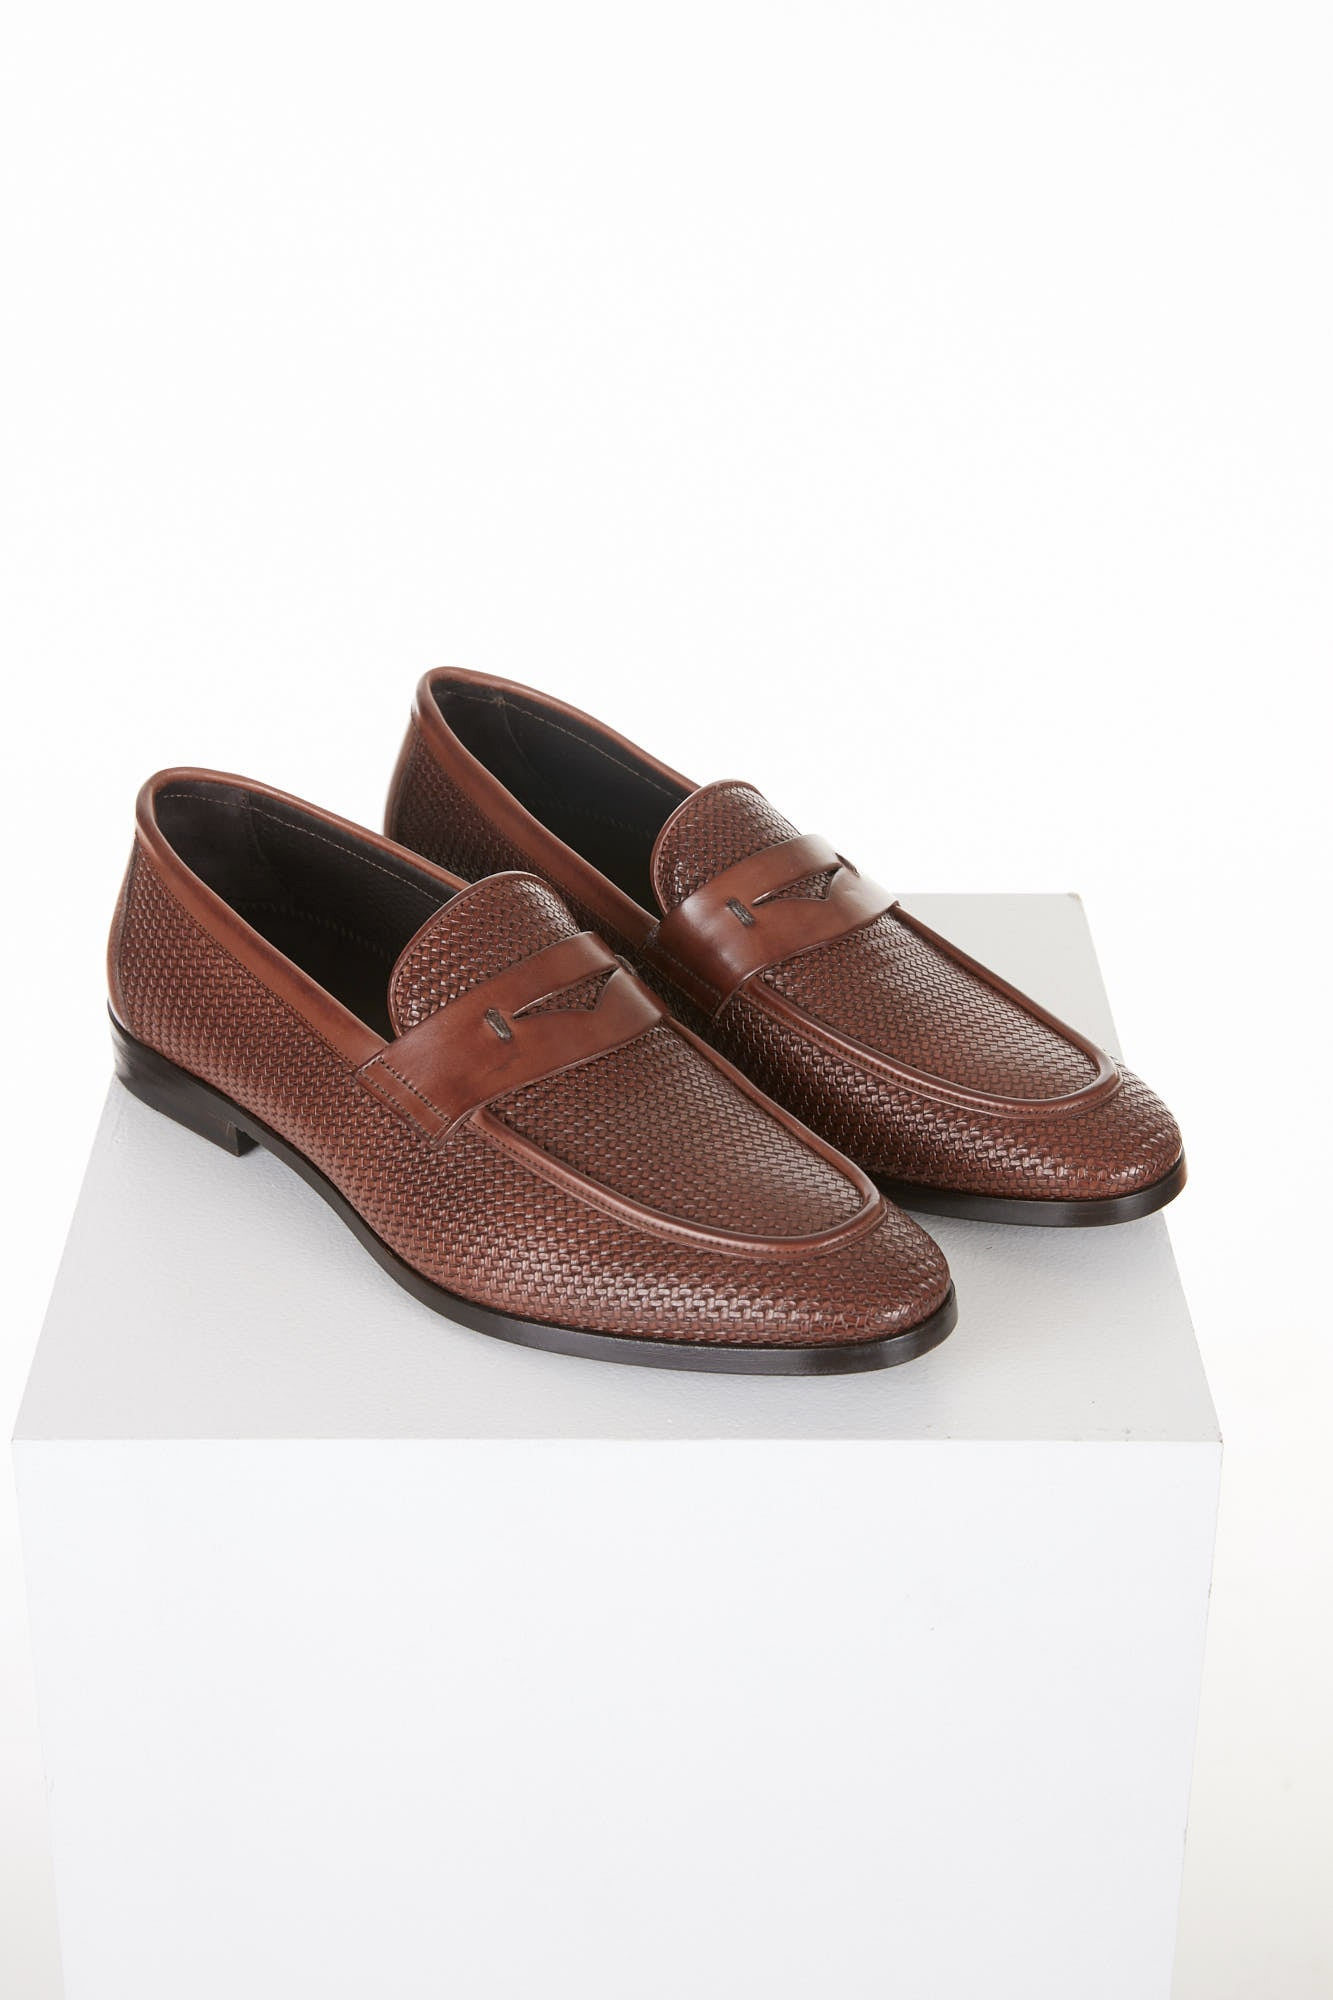 Canali Brown Printed Leather Penny Loafers - Shoes - Canali - LALONDE's